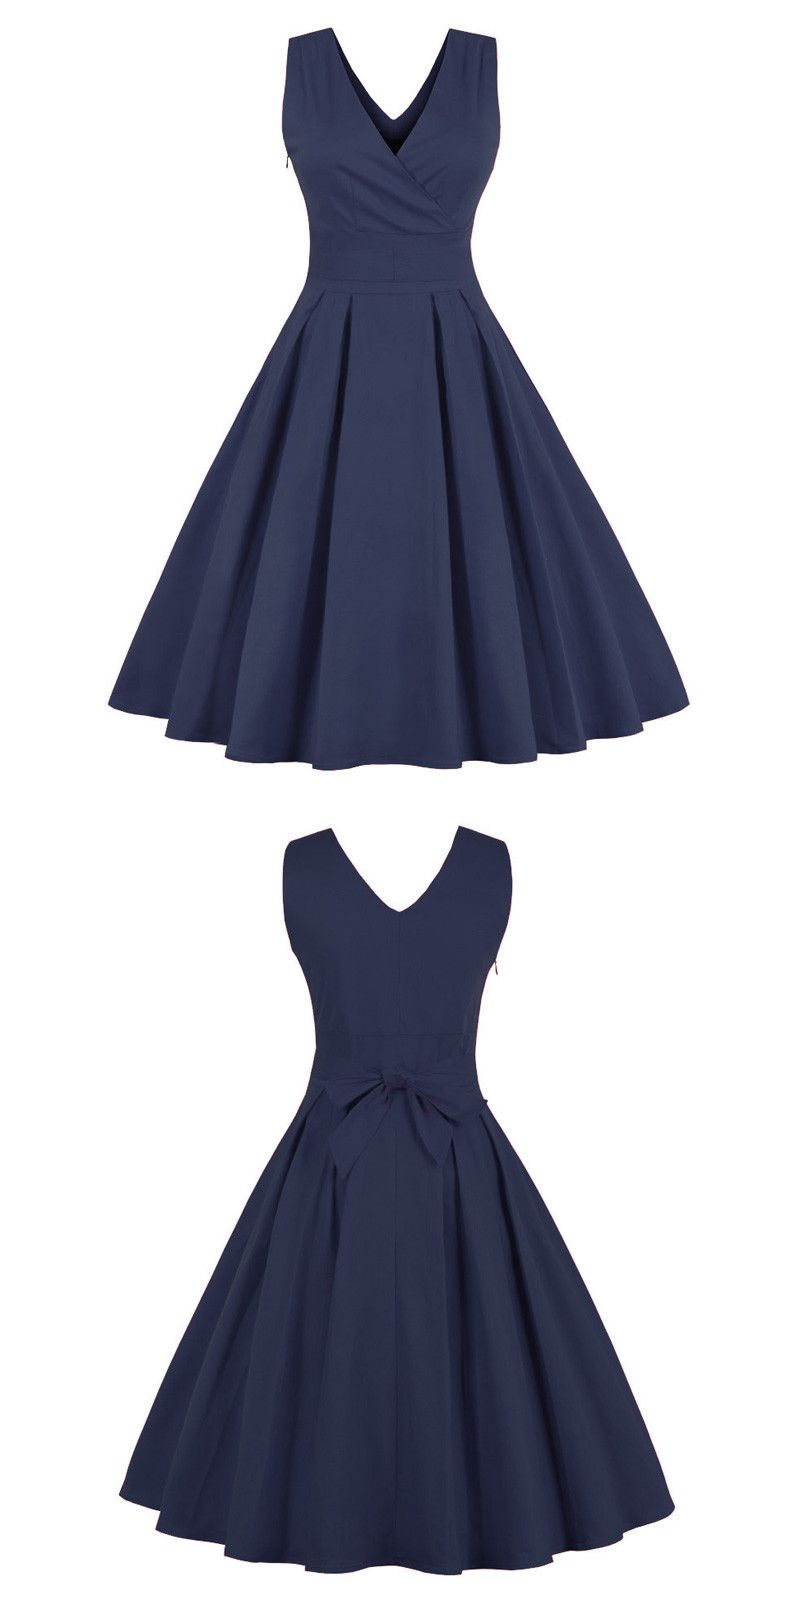 Red s vintage vneck pure color swing party dress navy blue